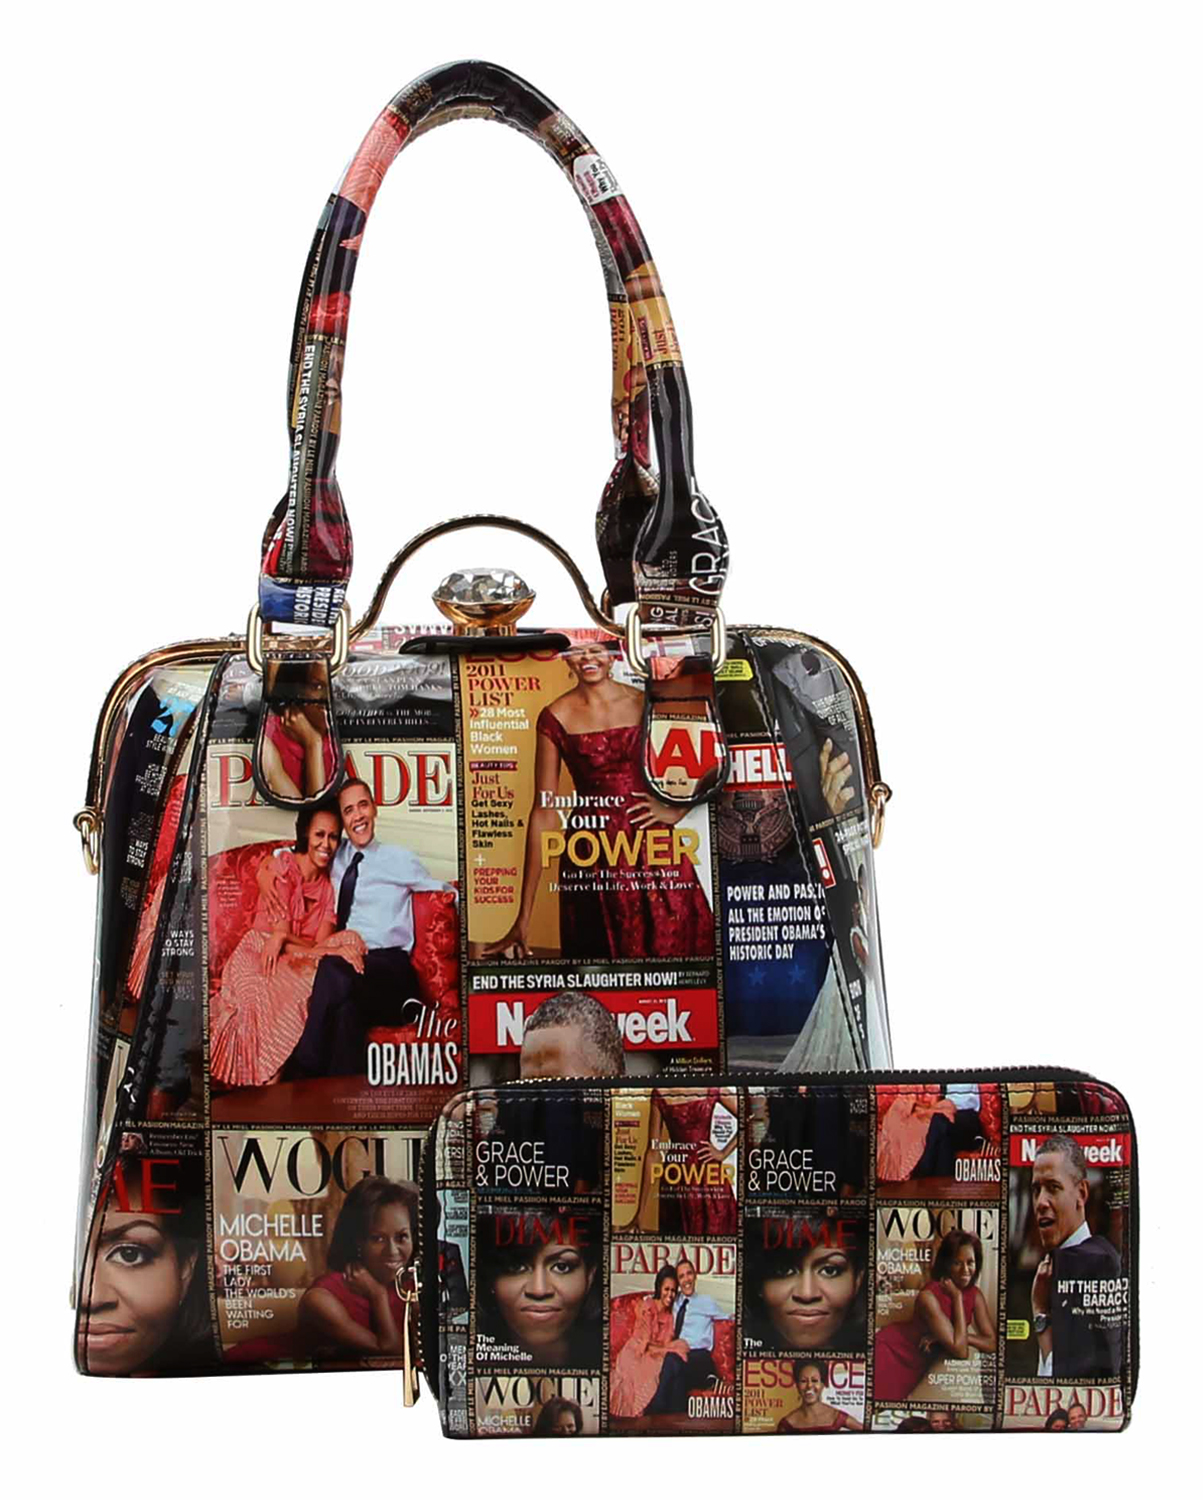 87298ae4984a Get Incredible Discount Prices on our Wholesale Fashion Handbags Today!